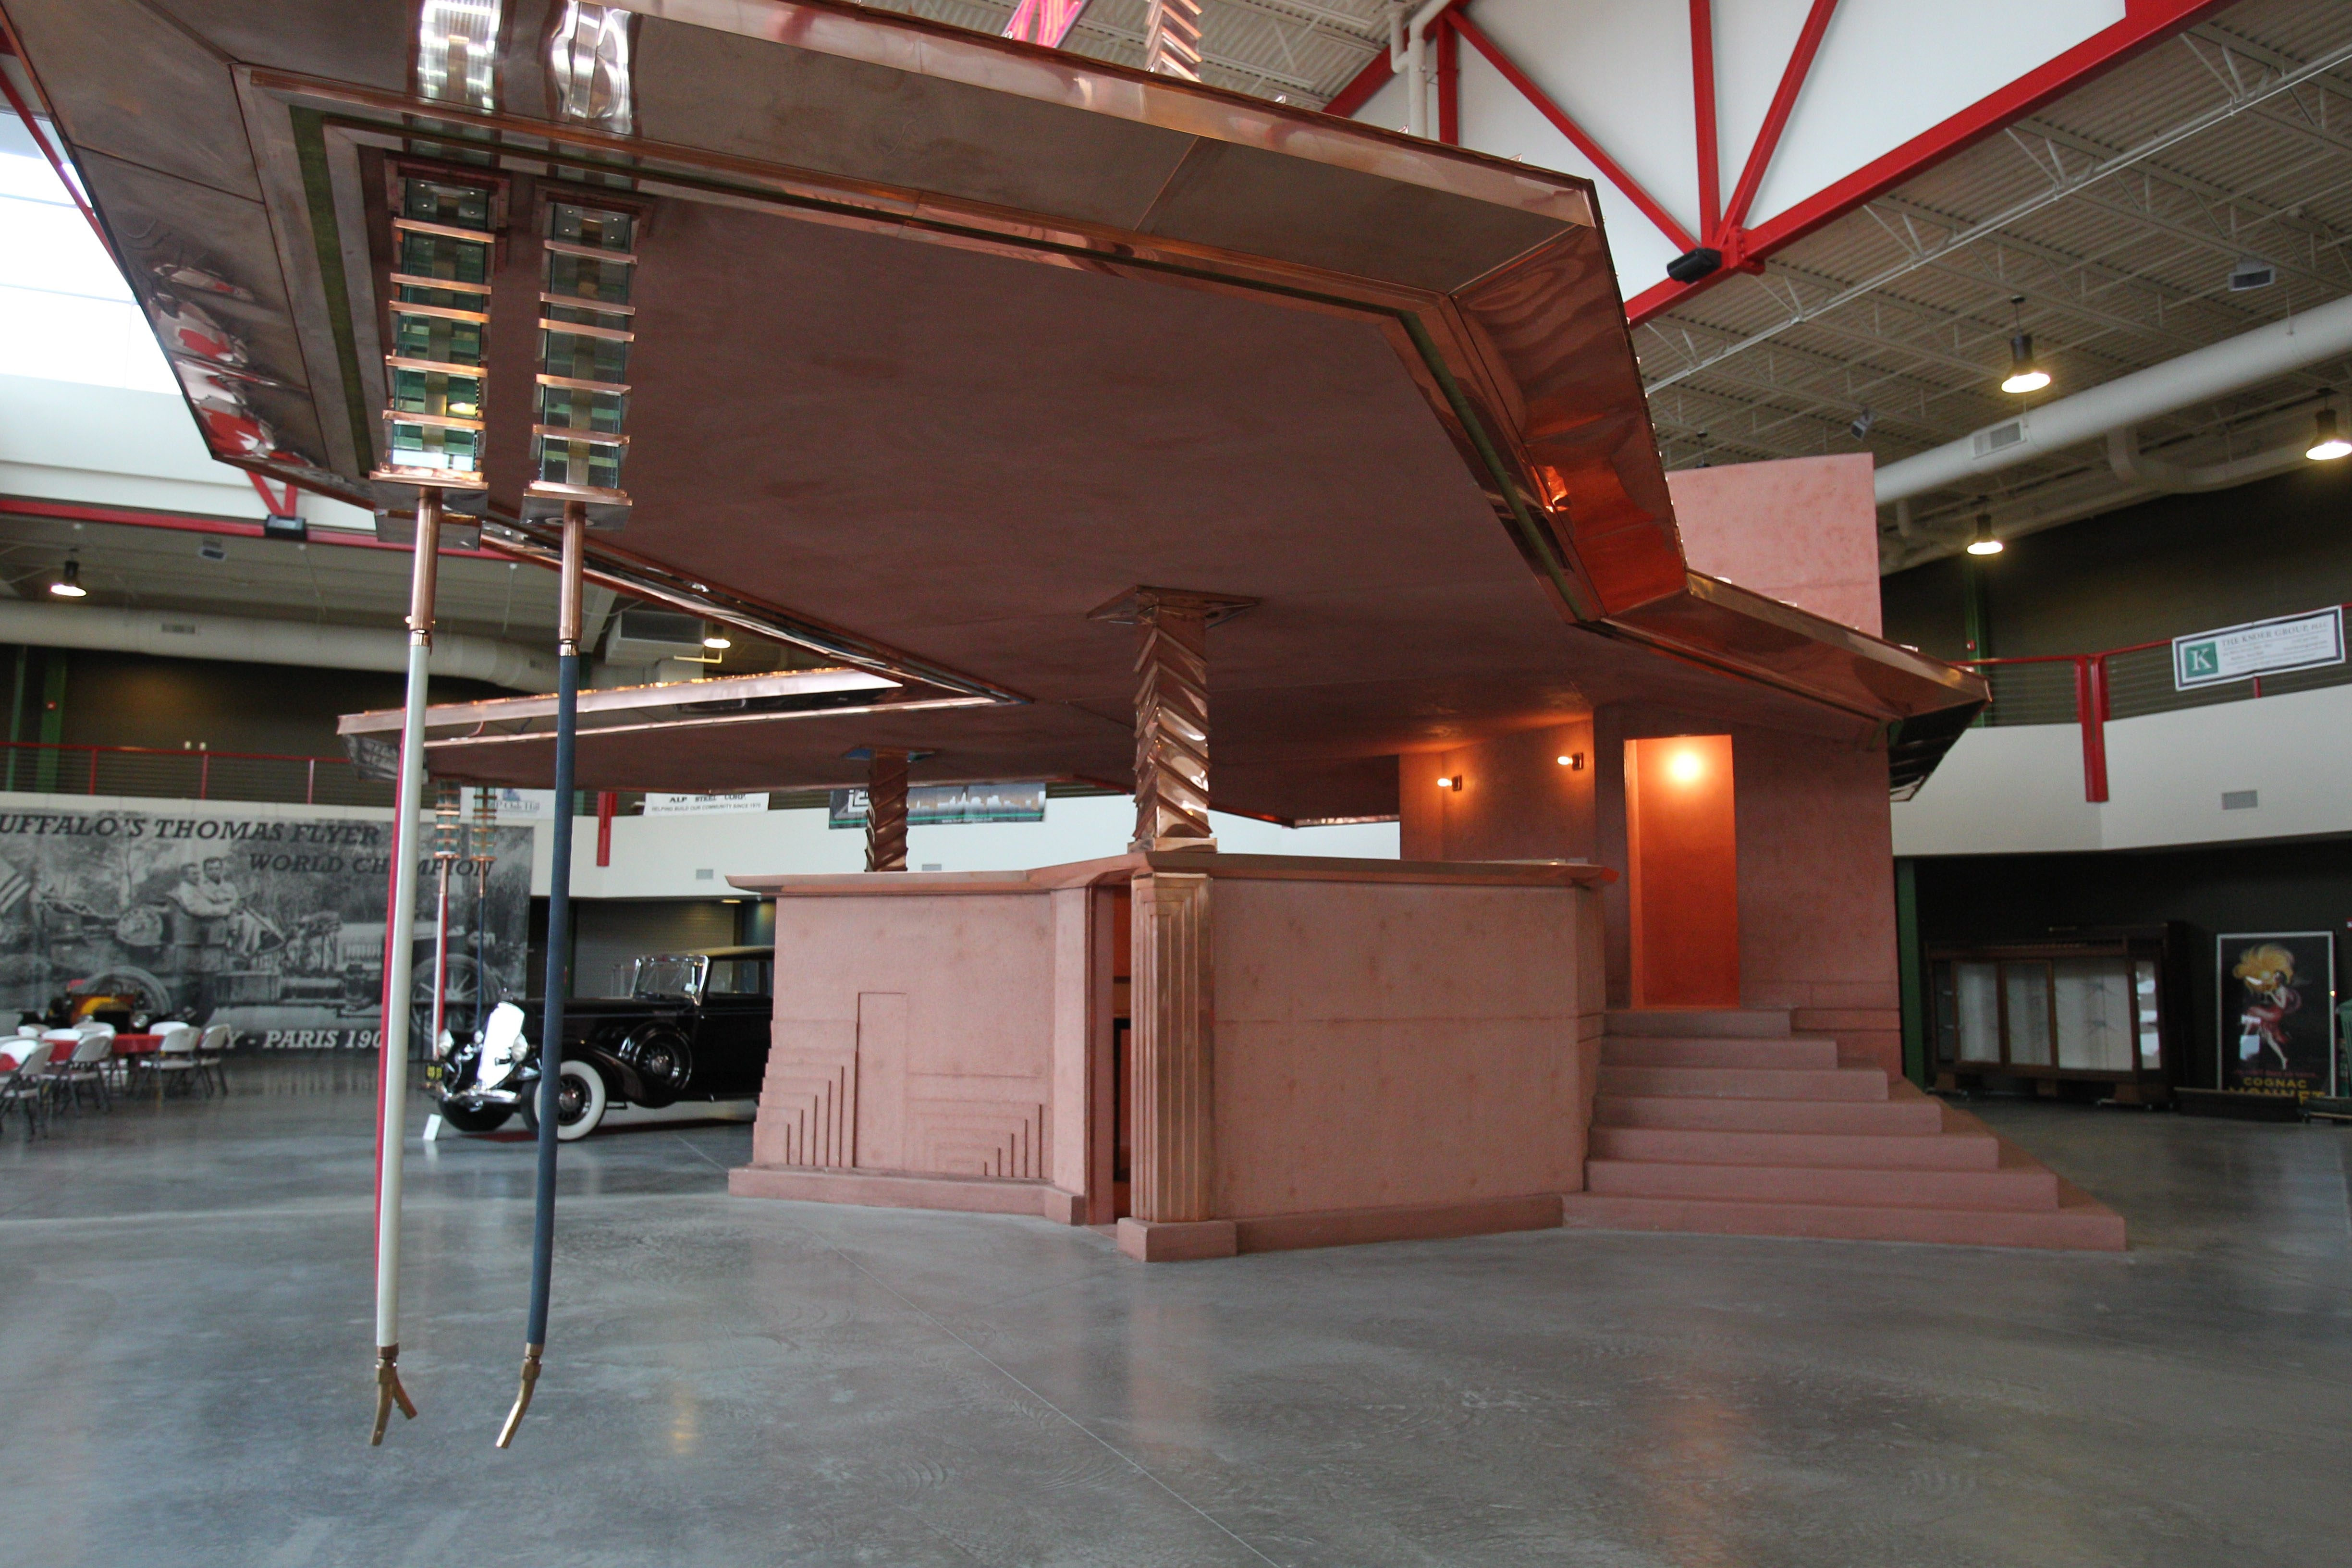 The Frank Lloyd Wright filling station that was planned for Michigan Avenue but never built has been constructed for the Buffalo Transportation Pierce-Arrow Museum. These are the gas pumps that Wright designed that operate on gravity rather than pumping the gas from tanks in the ground. The exhibit on the filling station will be open from 2 to 5 p.m. Friday.